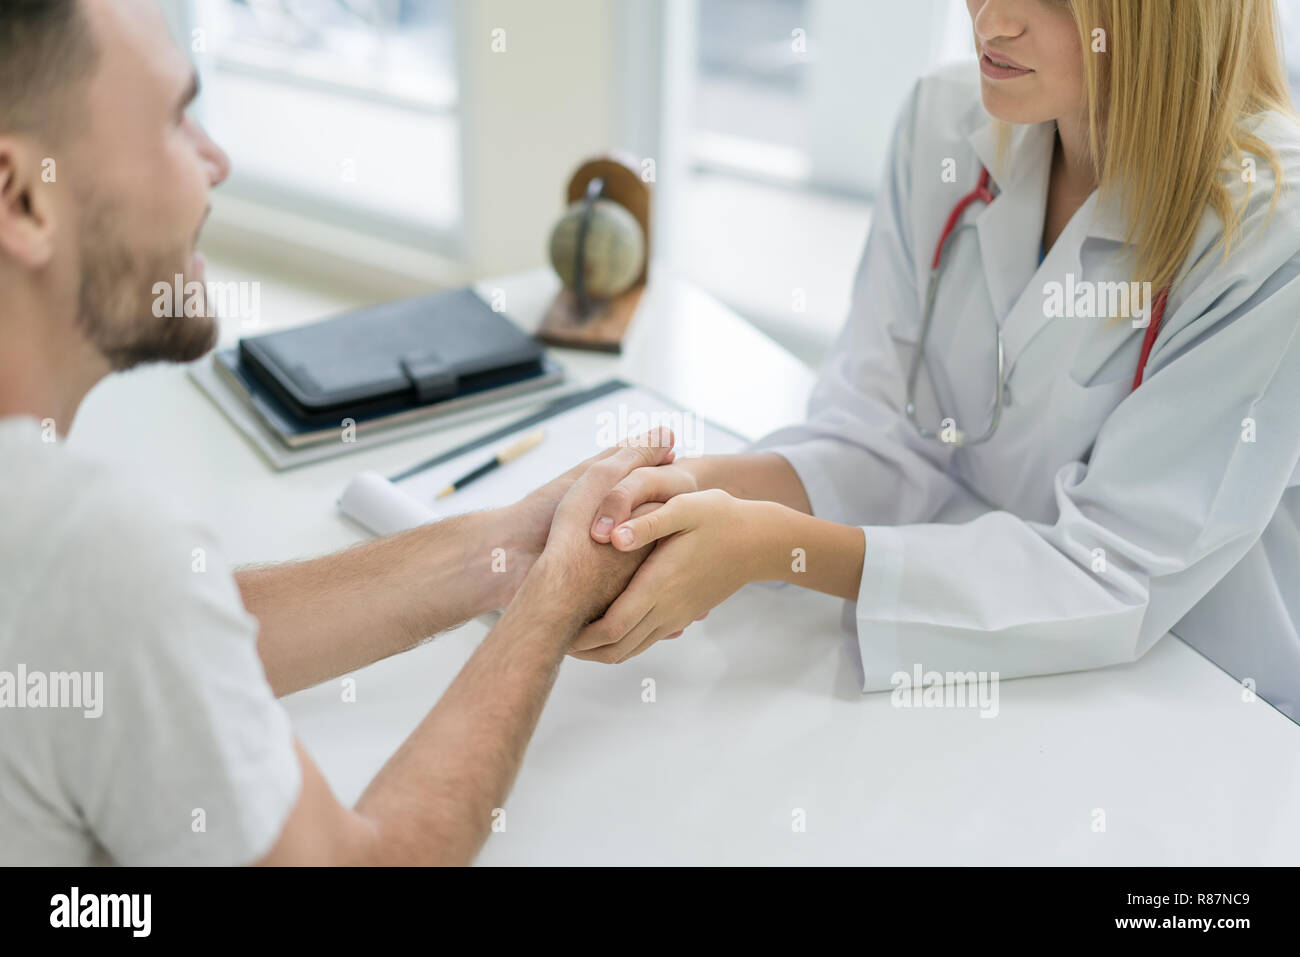 Doctor or psychiatrist consulting and diagnostic examining stressful man patient in medical clinic or hospital healthcare service center. - Stock Image